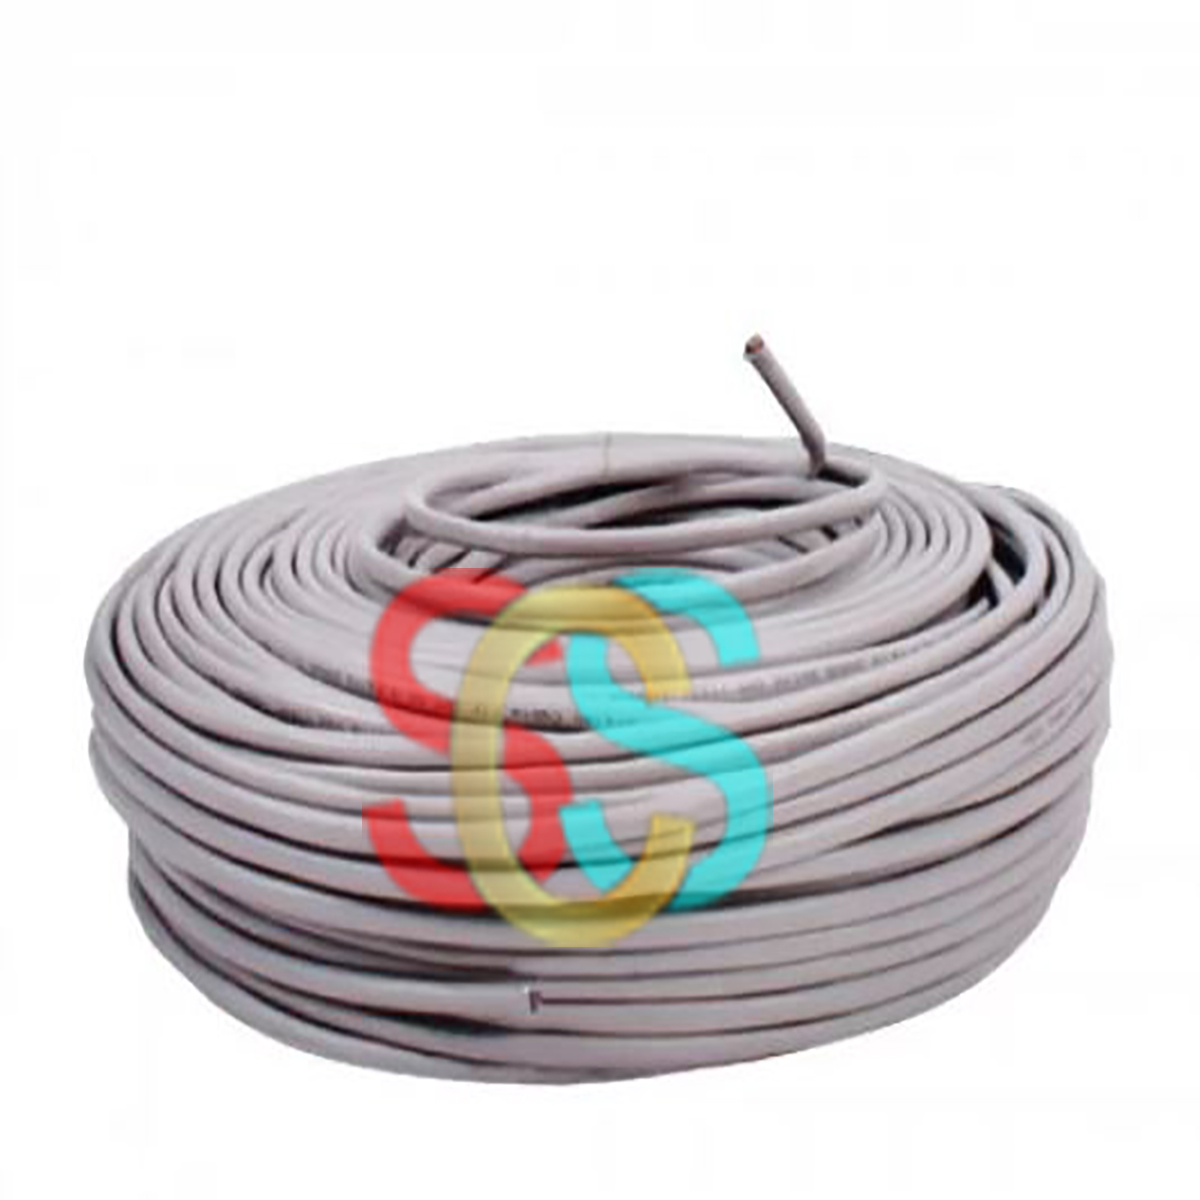 Micronet Cat-6, 305 Meter, Grey Network Cable